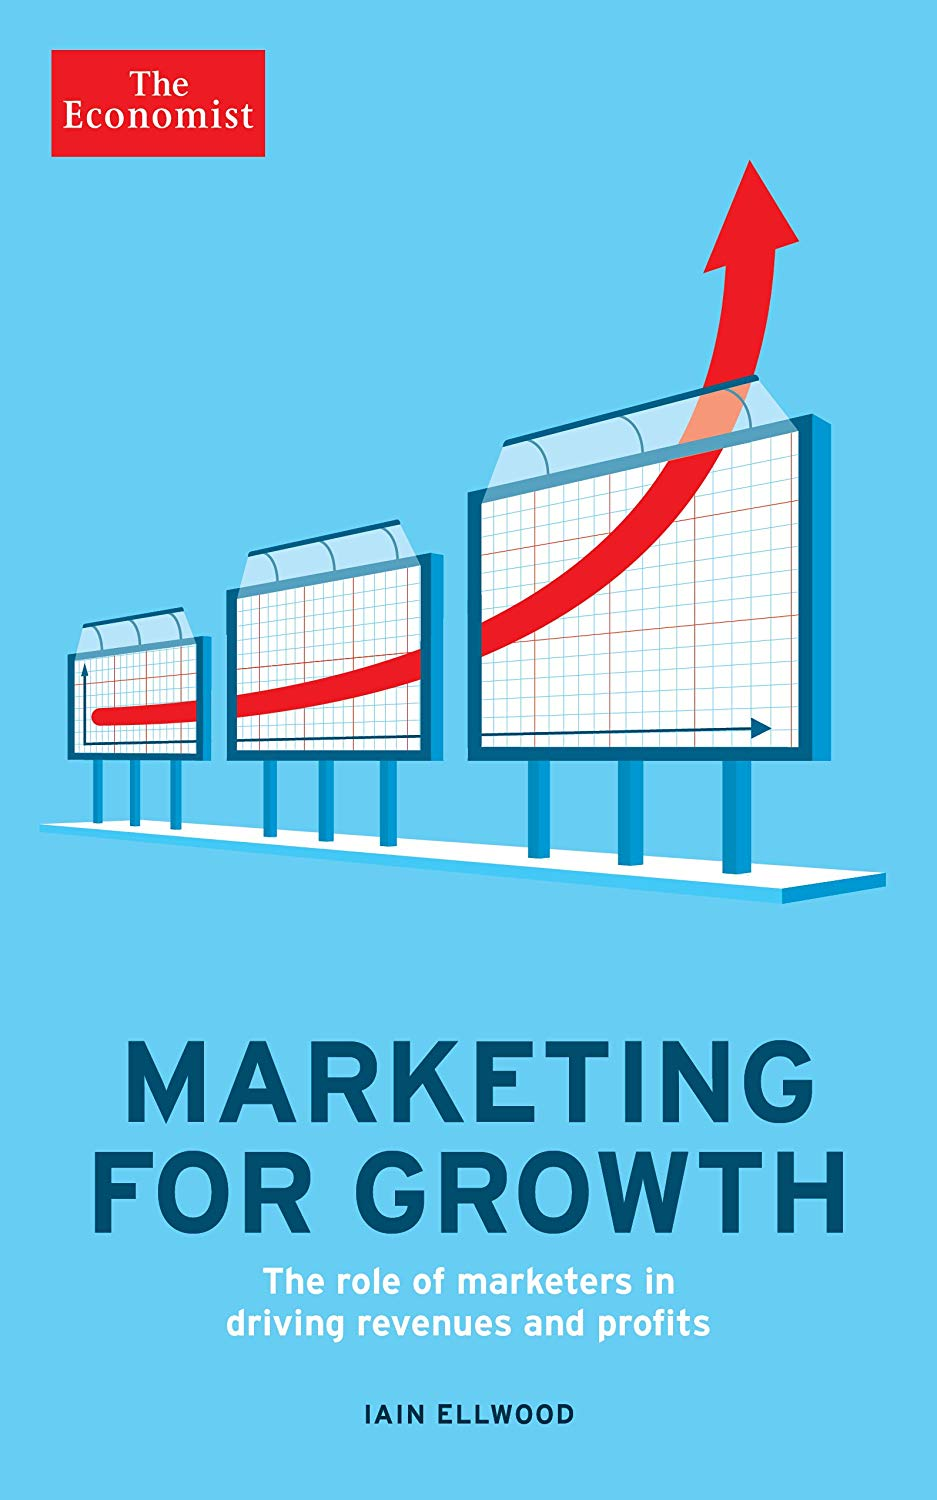 The Economist Marketing for Growth The role of marketers in driving revenues and profits